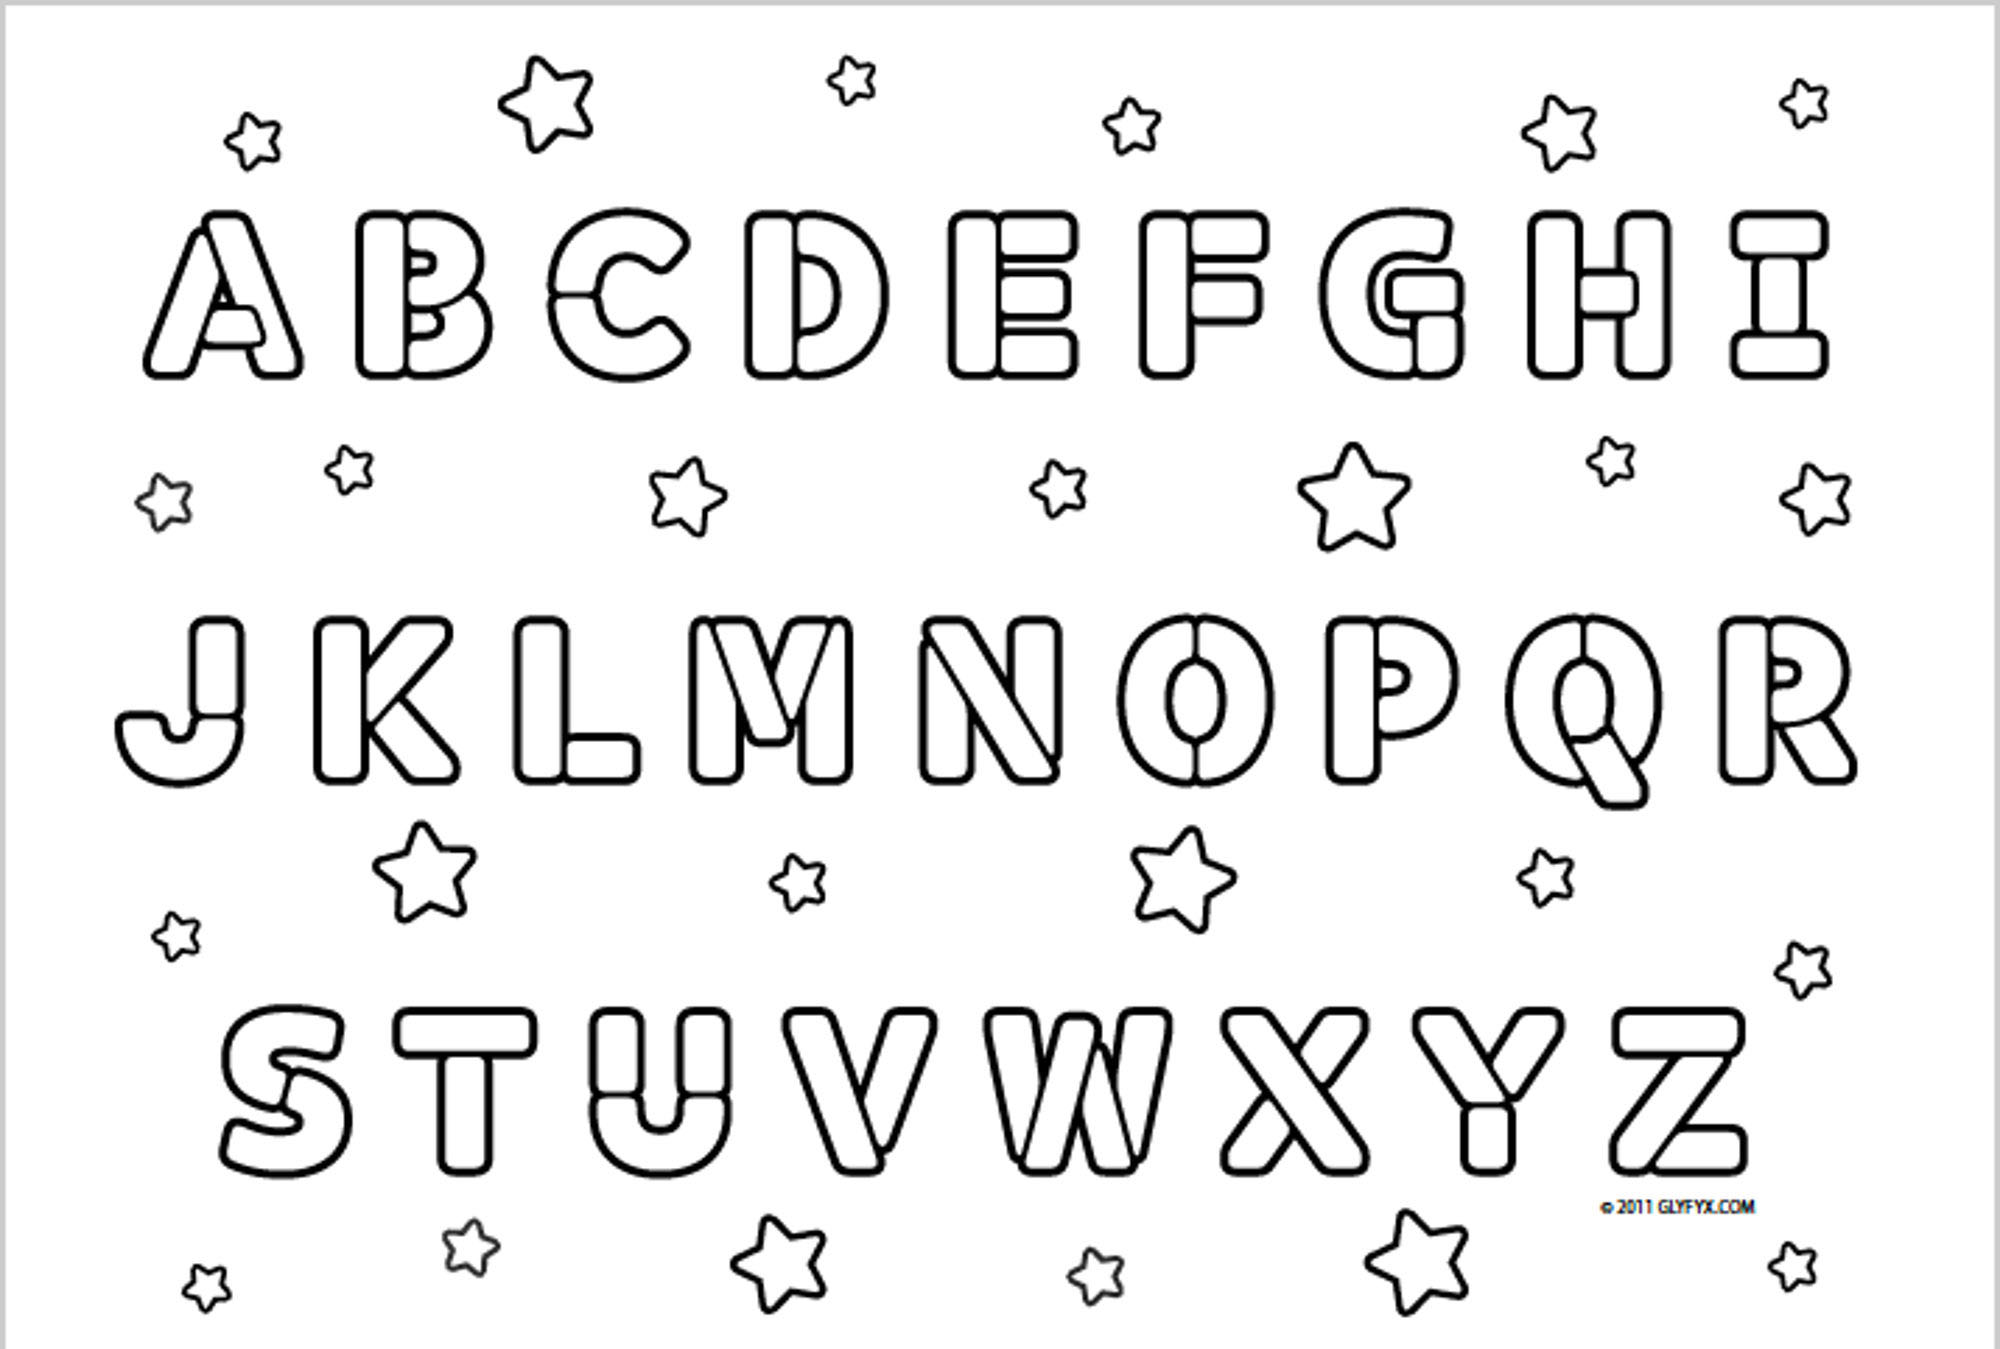 coloring worksheets abc free printable abc coloring pages for kids abc worksheets coloring